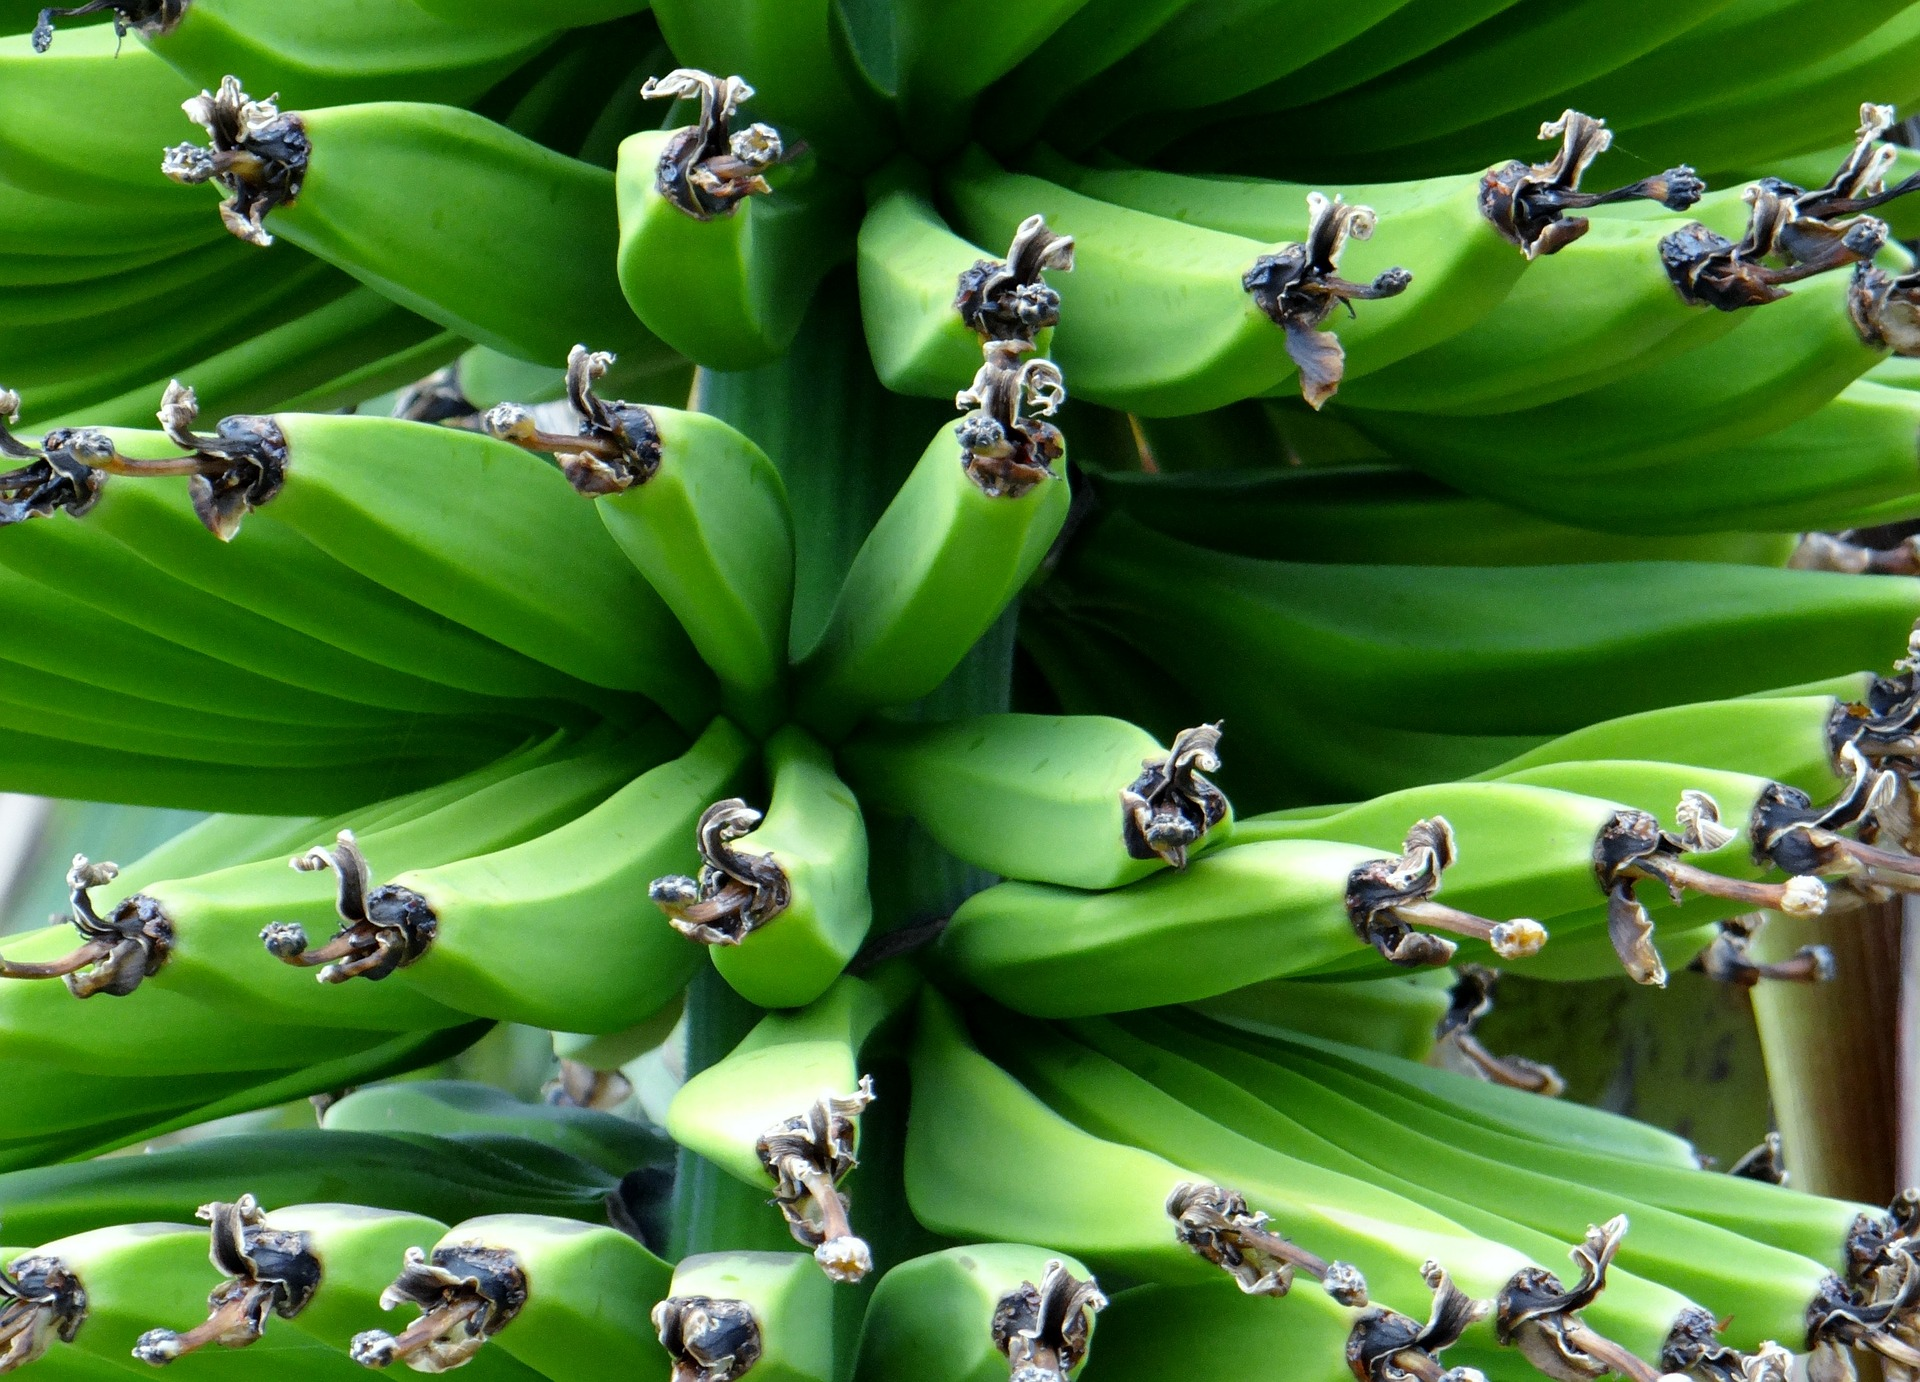 fresh produce: bananas